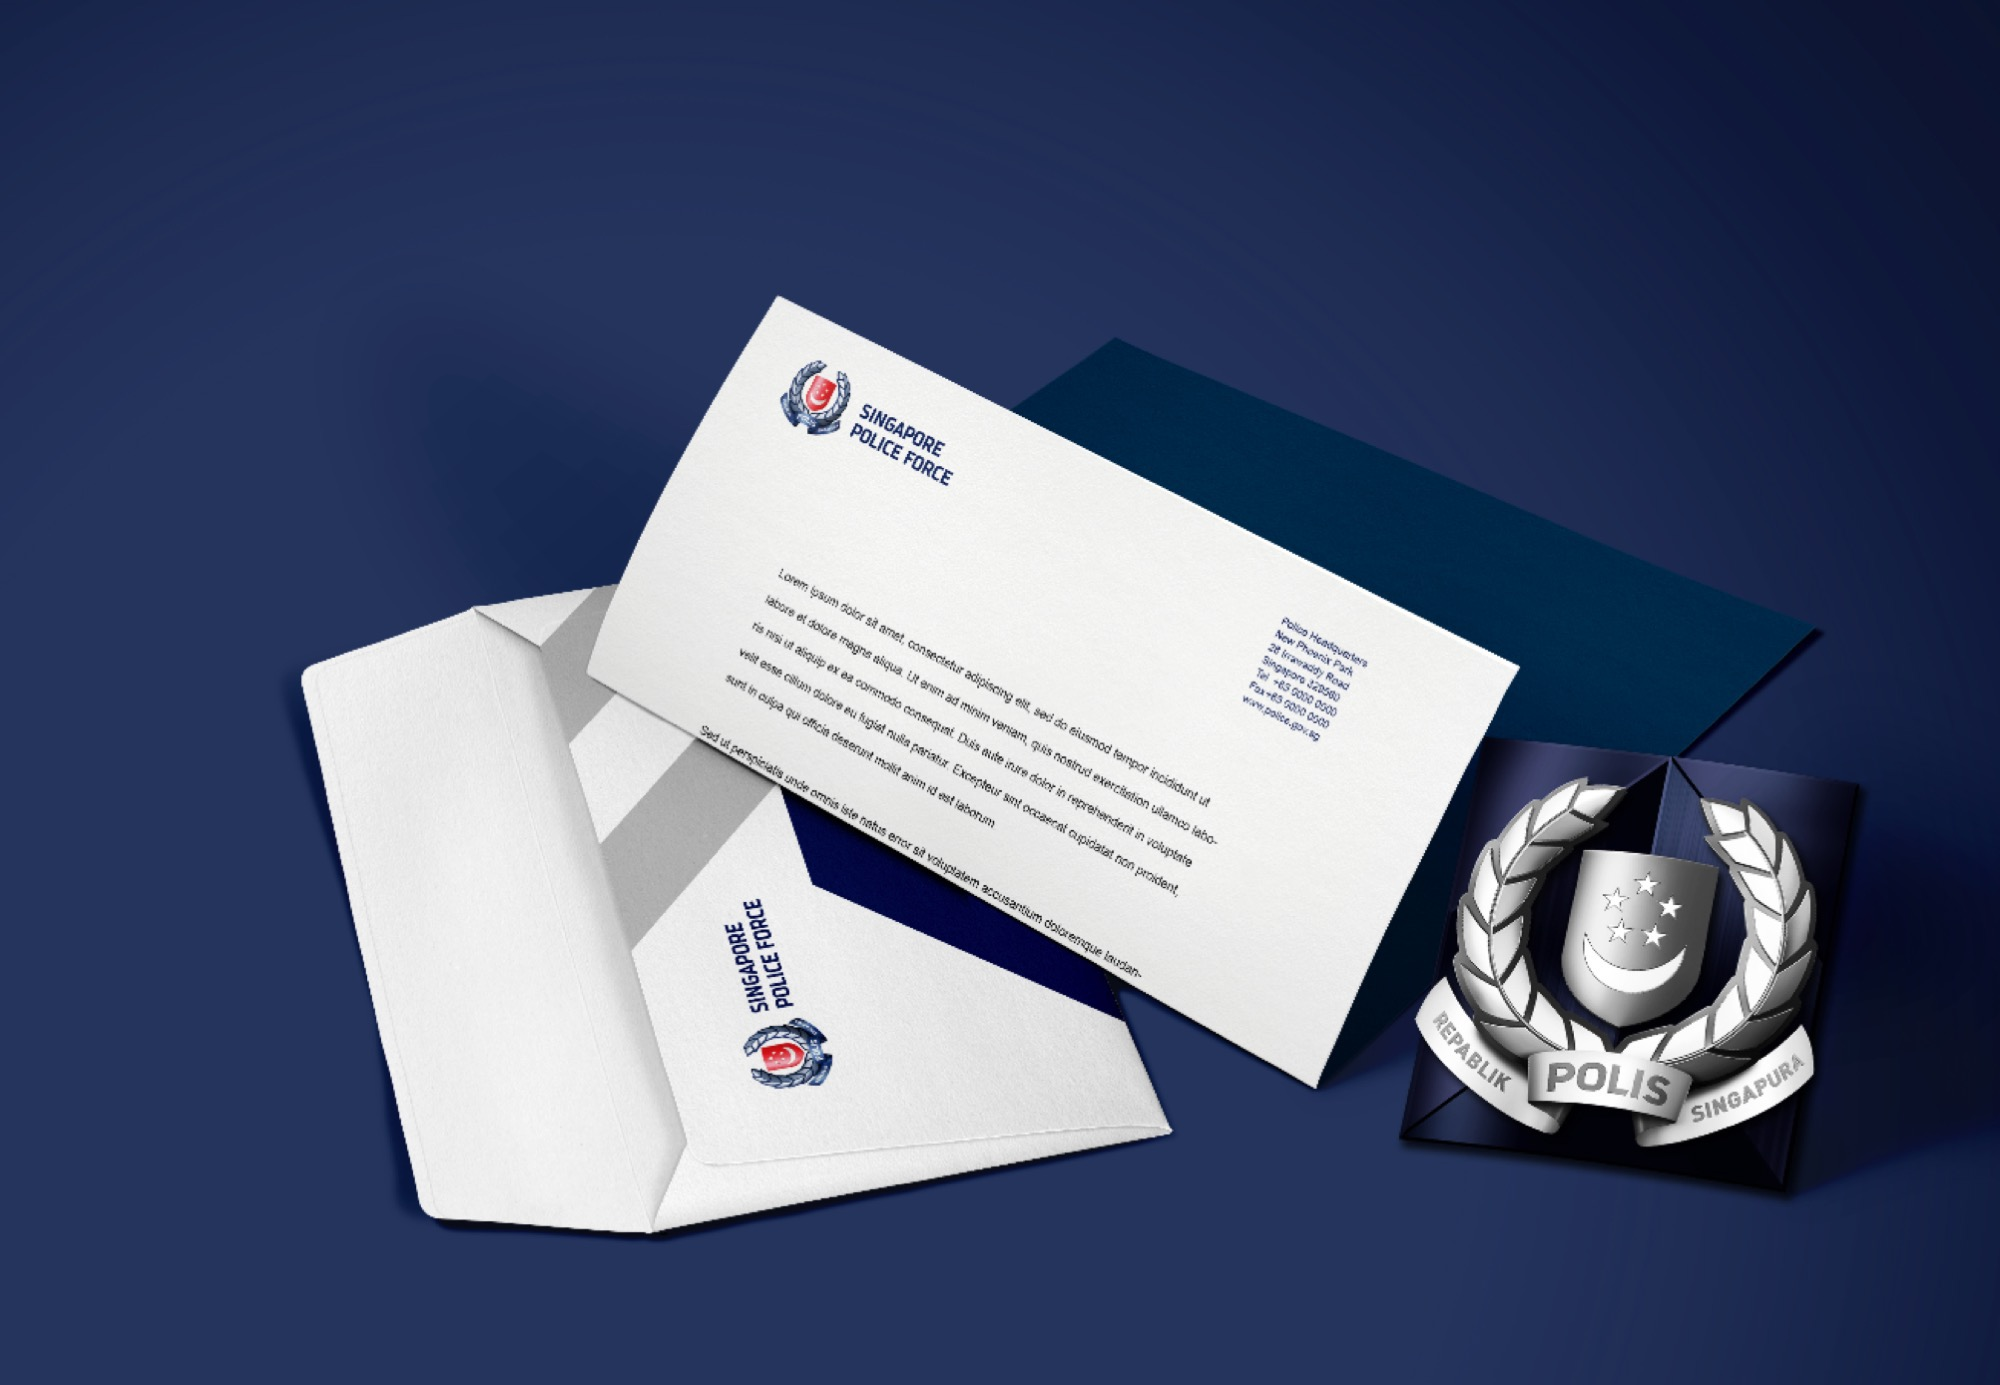 Singapore Police Force on Behance